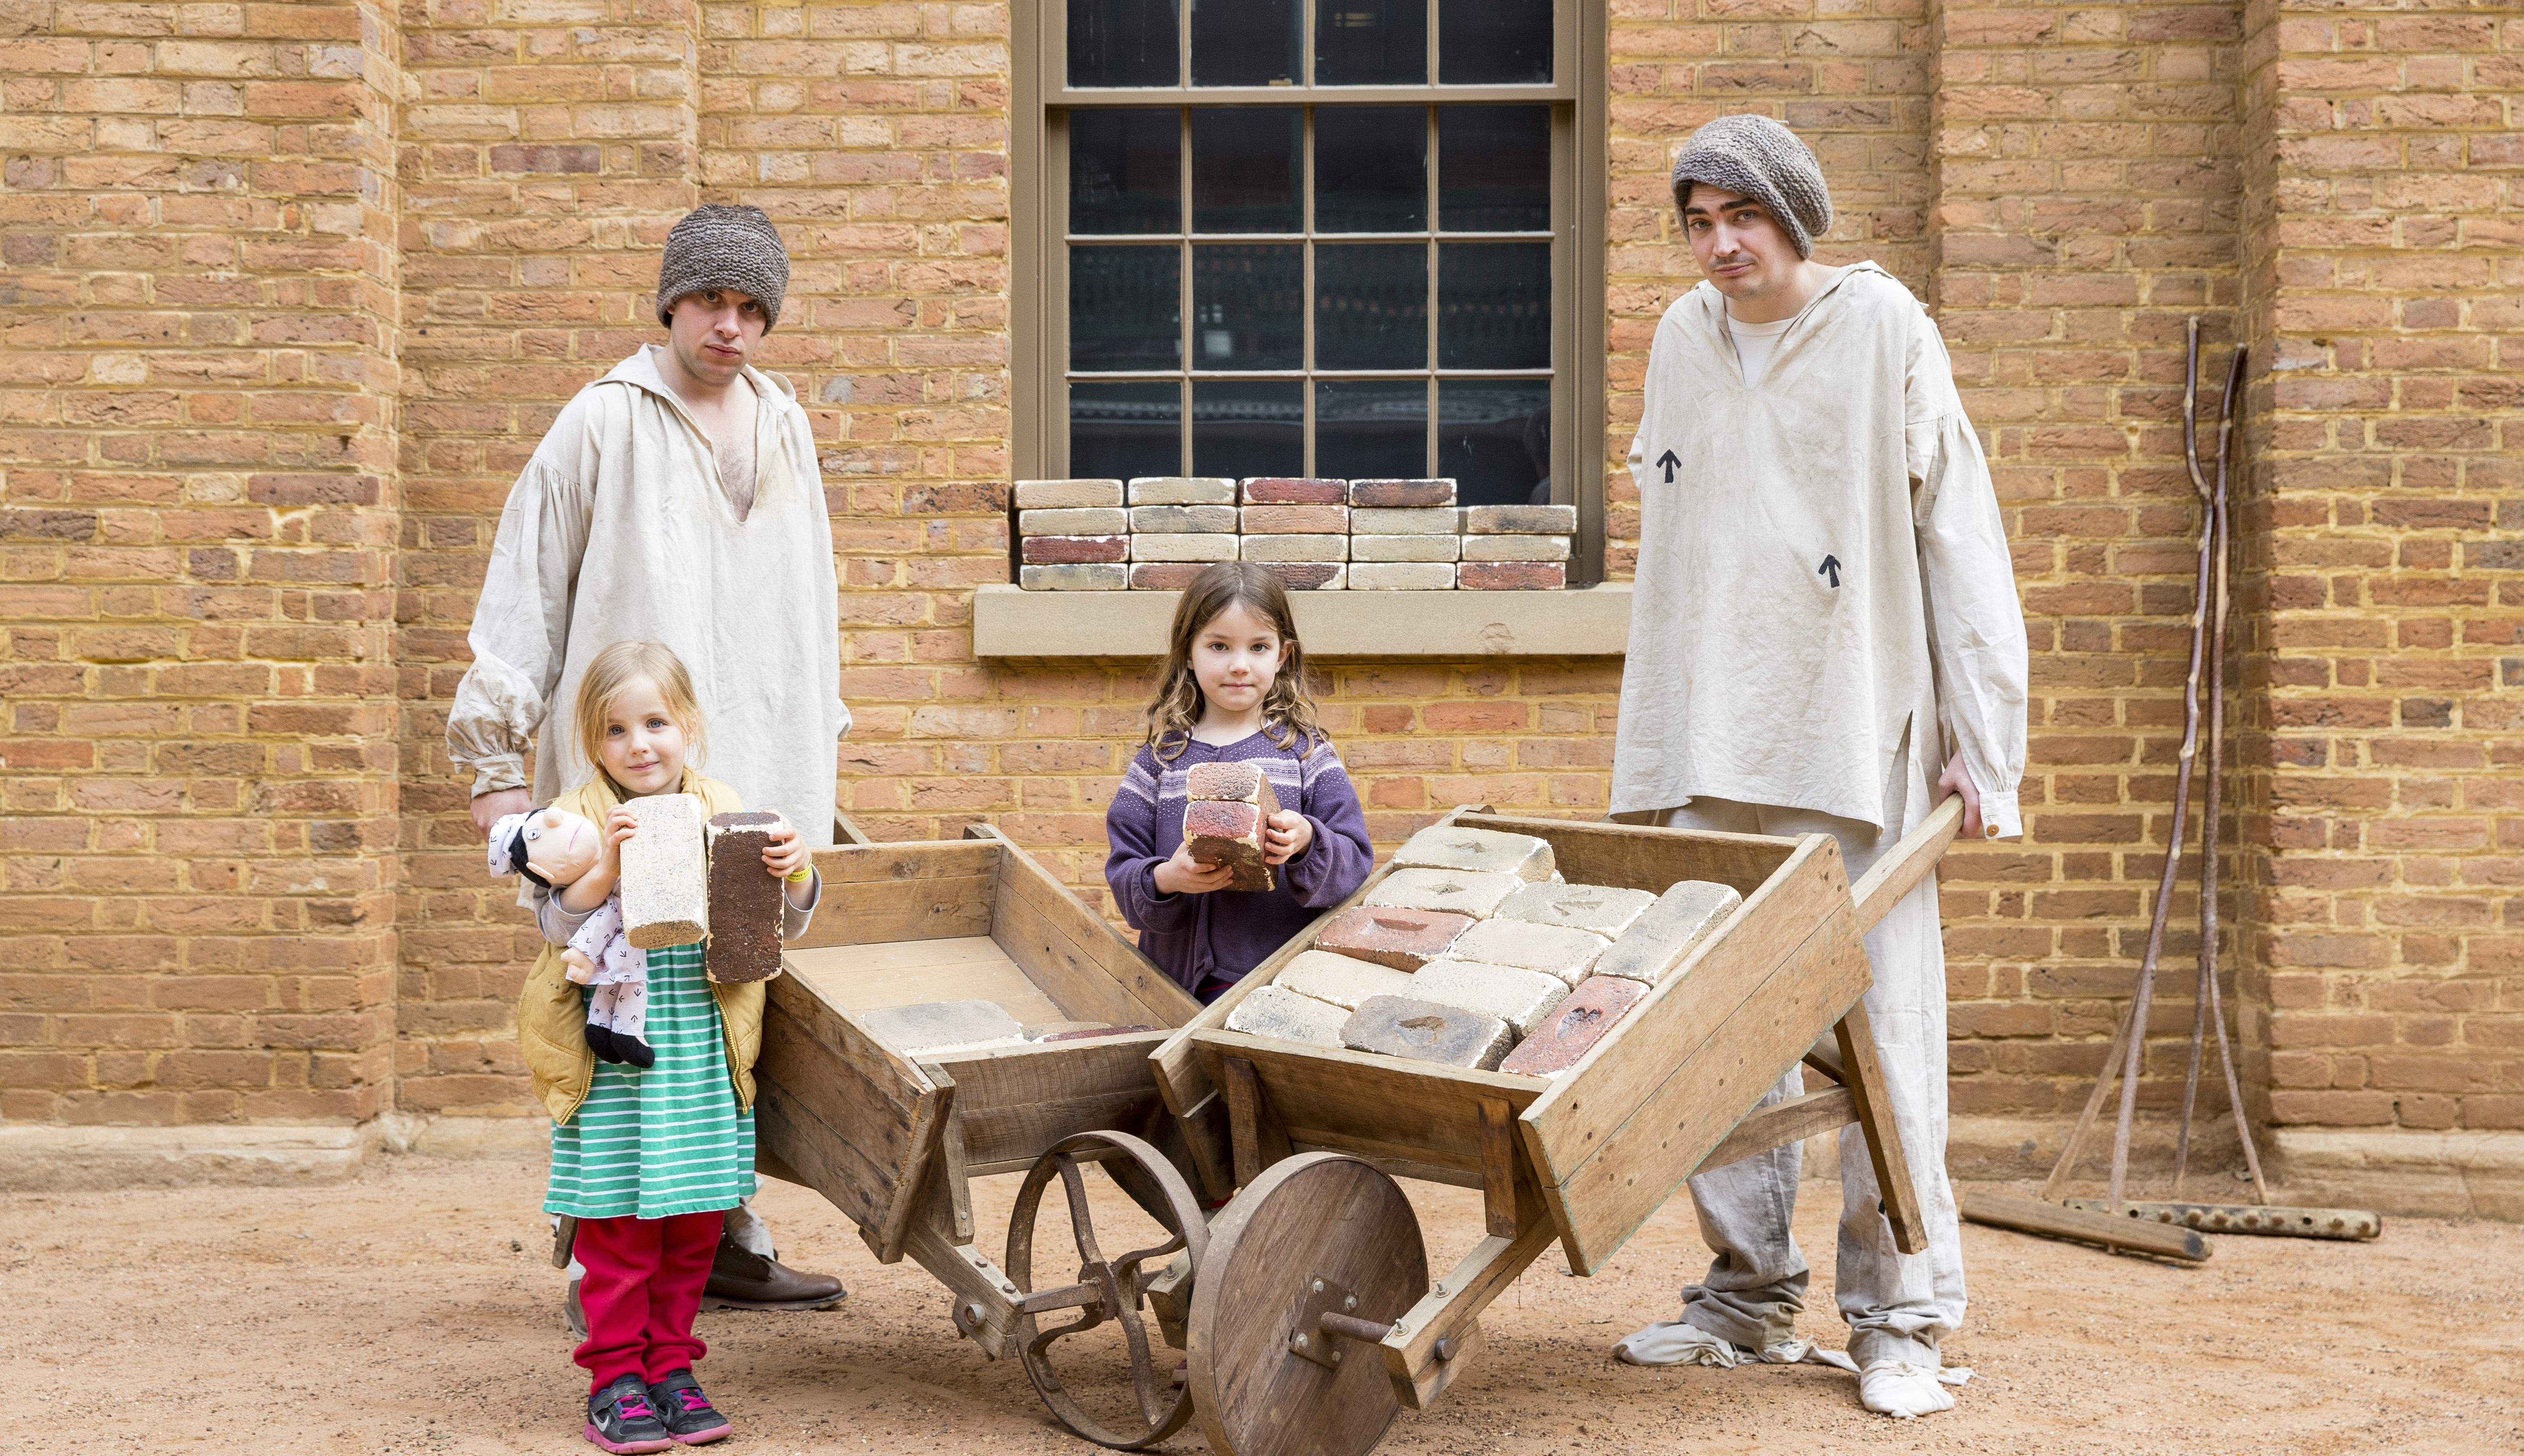 Two actors dressed as convicts holding wheelbarrows, standing with two little kids